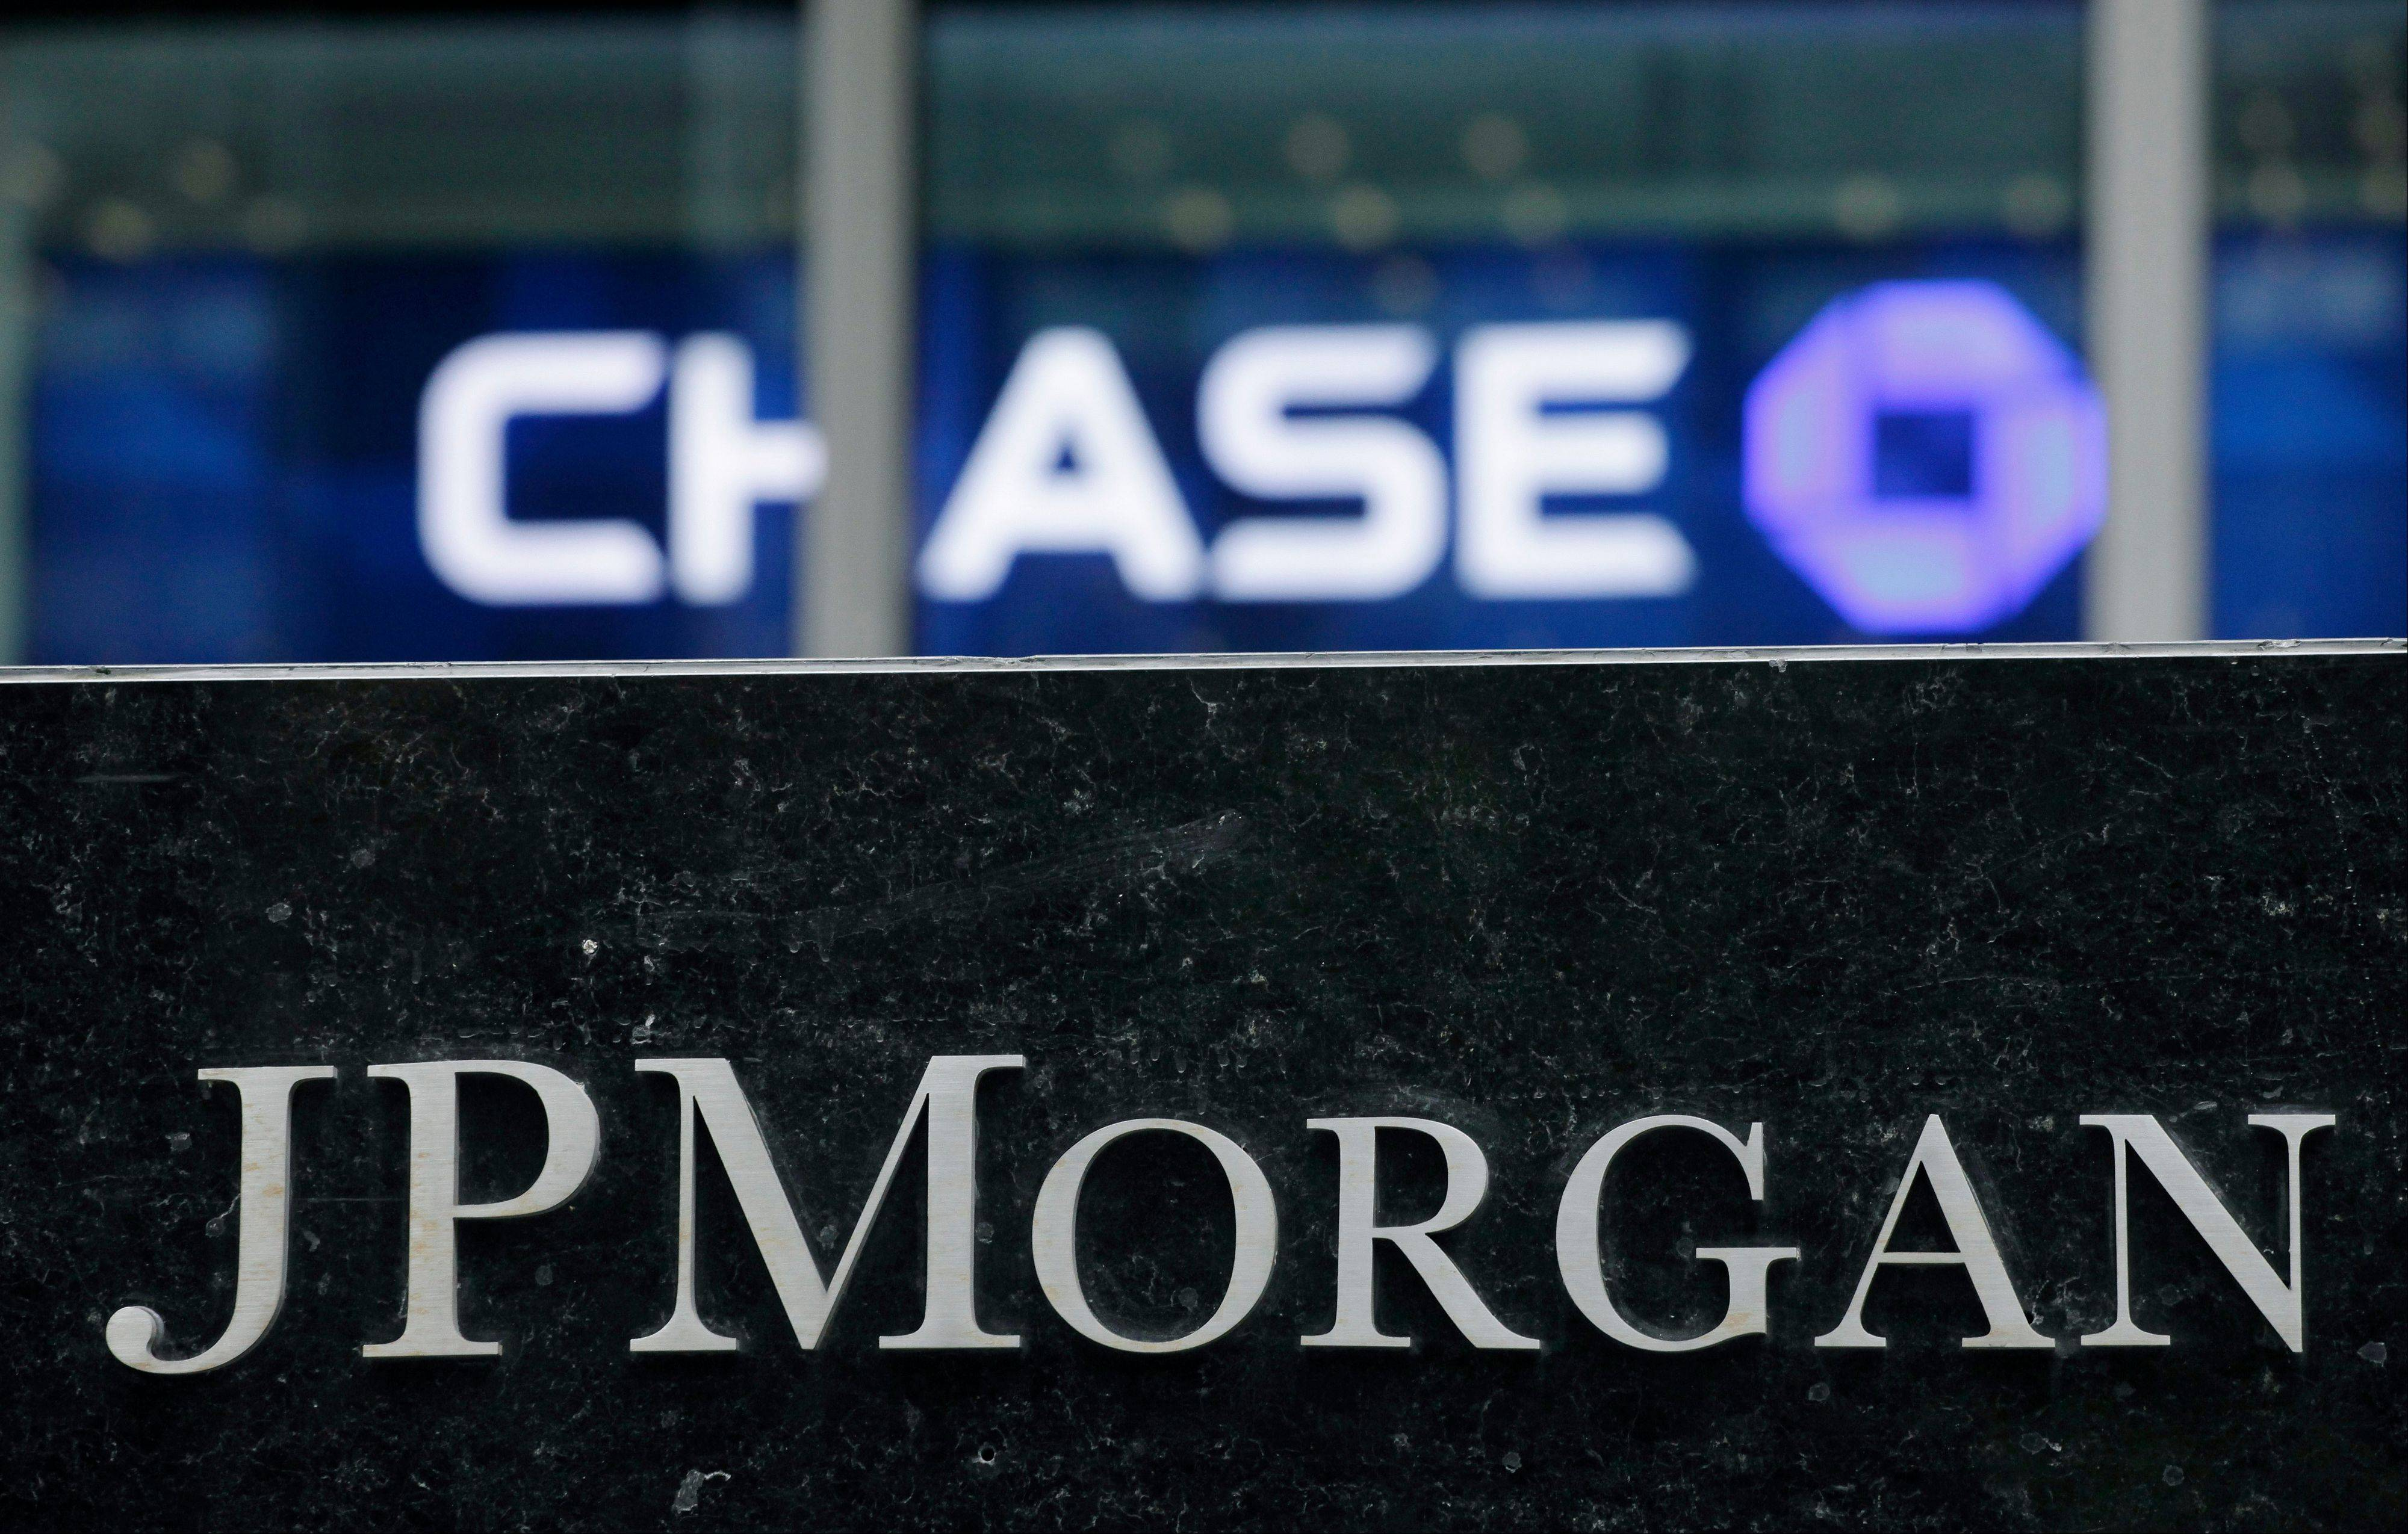 JPMorgan Chase & Co., the biggest U.S. bank, reached a settlement with regulators to resolve claims tied to its home-loan business and said it would buy back as much as $3 billion of shares.